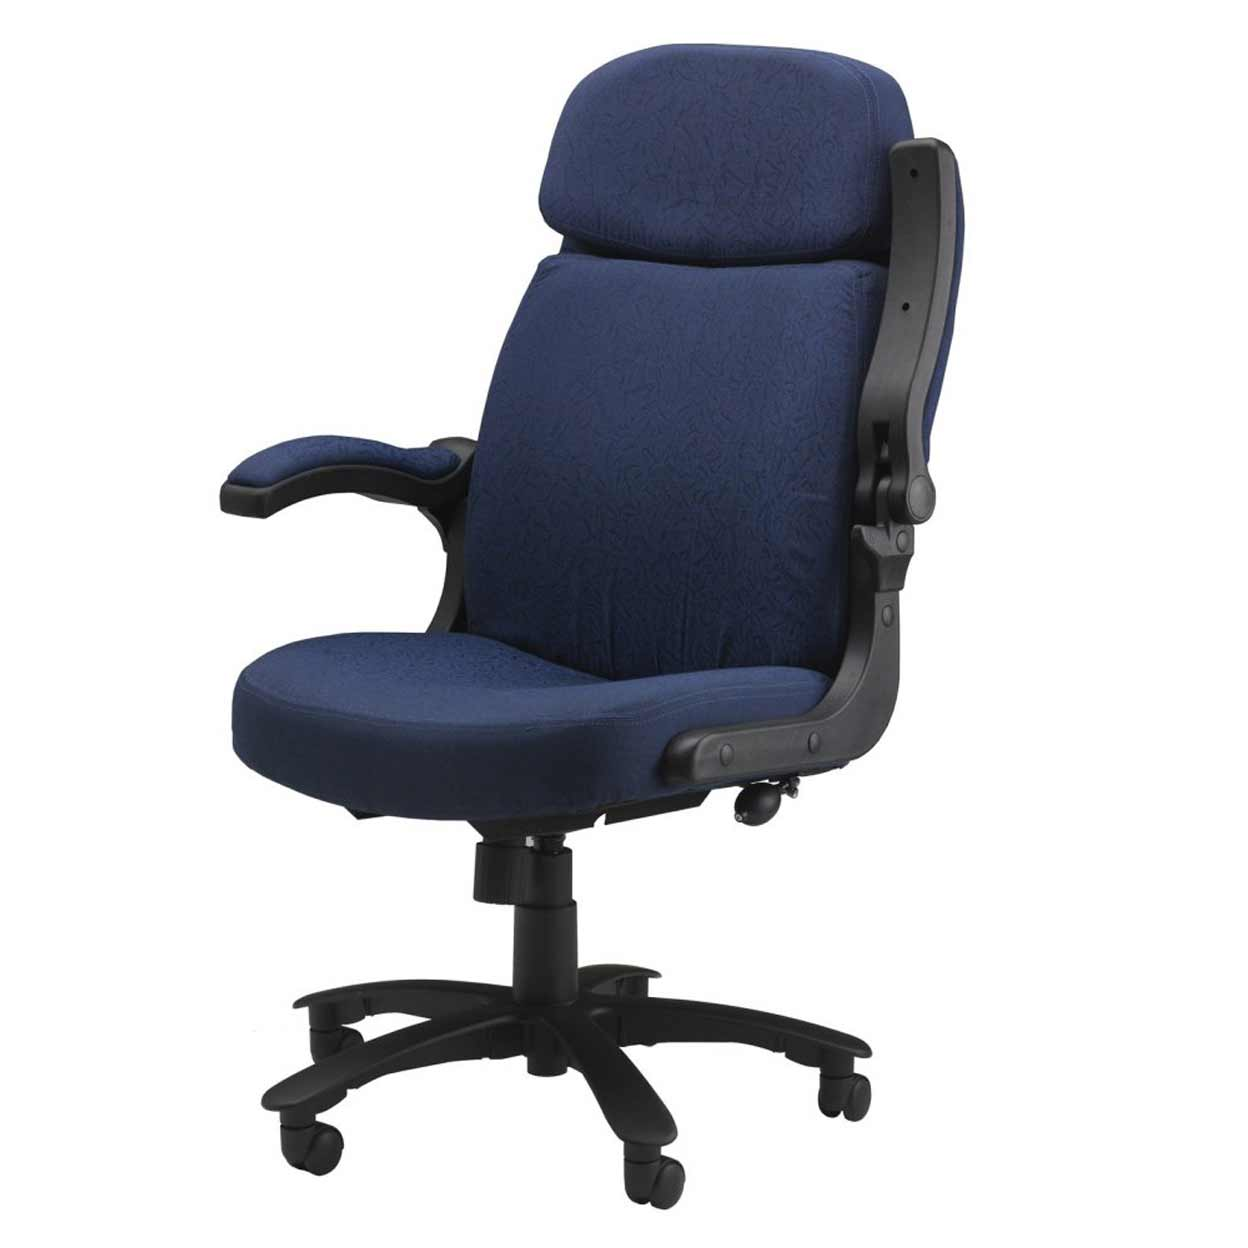 Mayline Ergonomic Tall Blue Pivot Arm Chairs